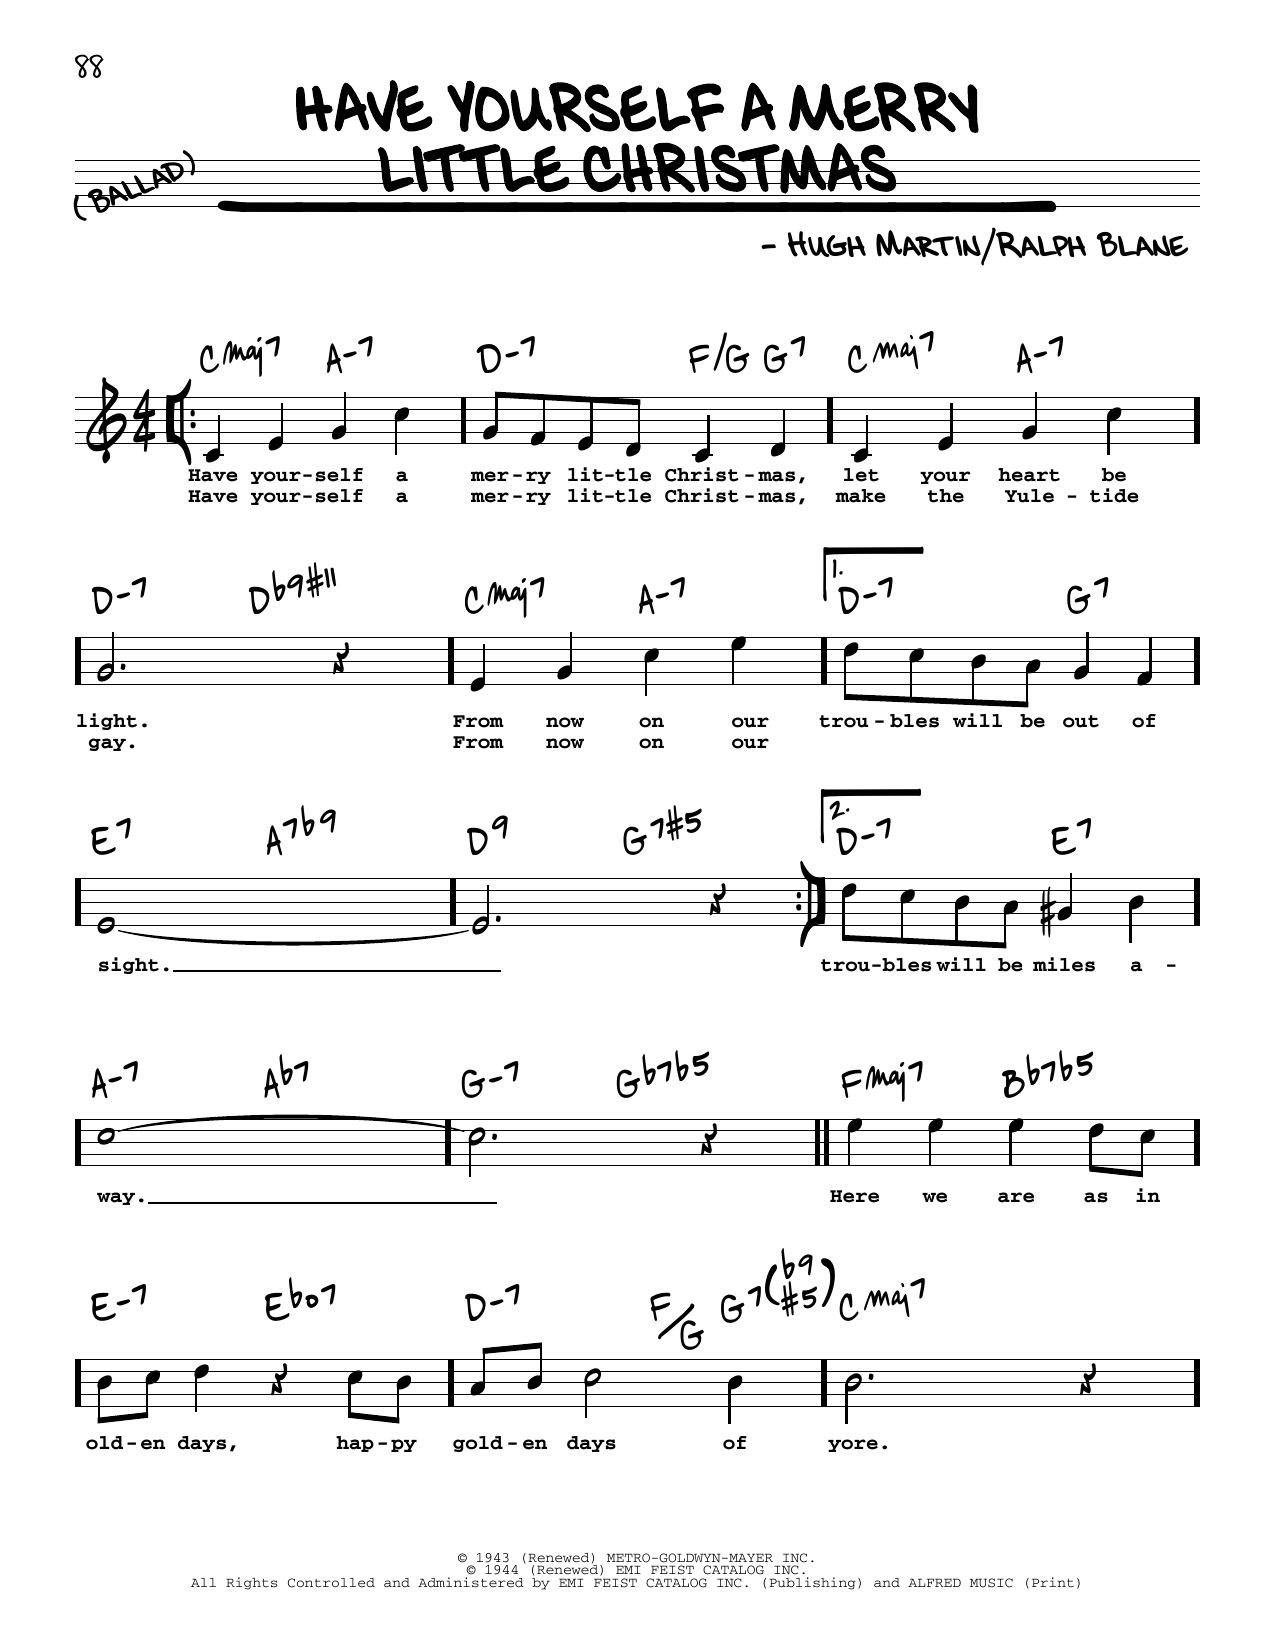 have yourself a merry little christmas sheet music - Have Yourself A Merry Little Christmas Chords